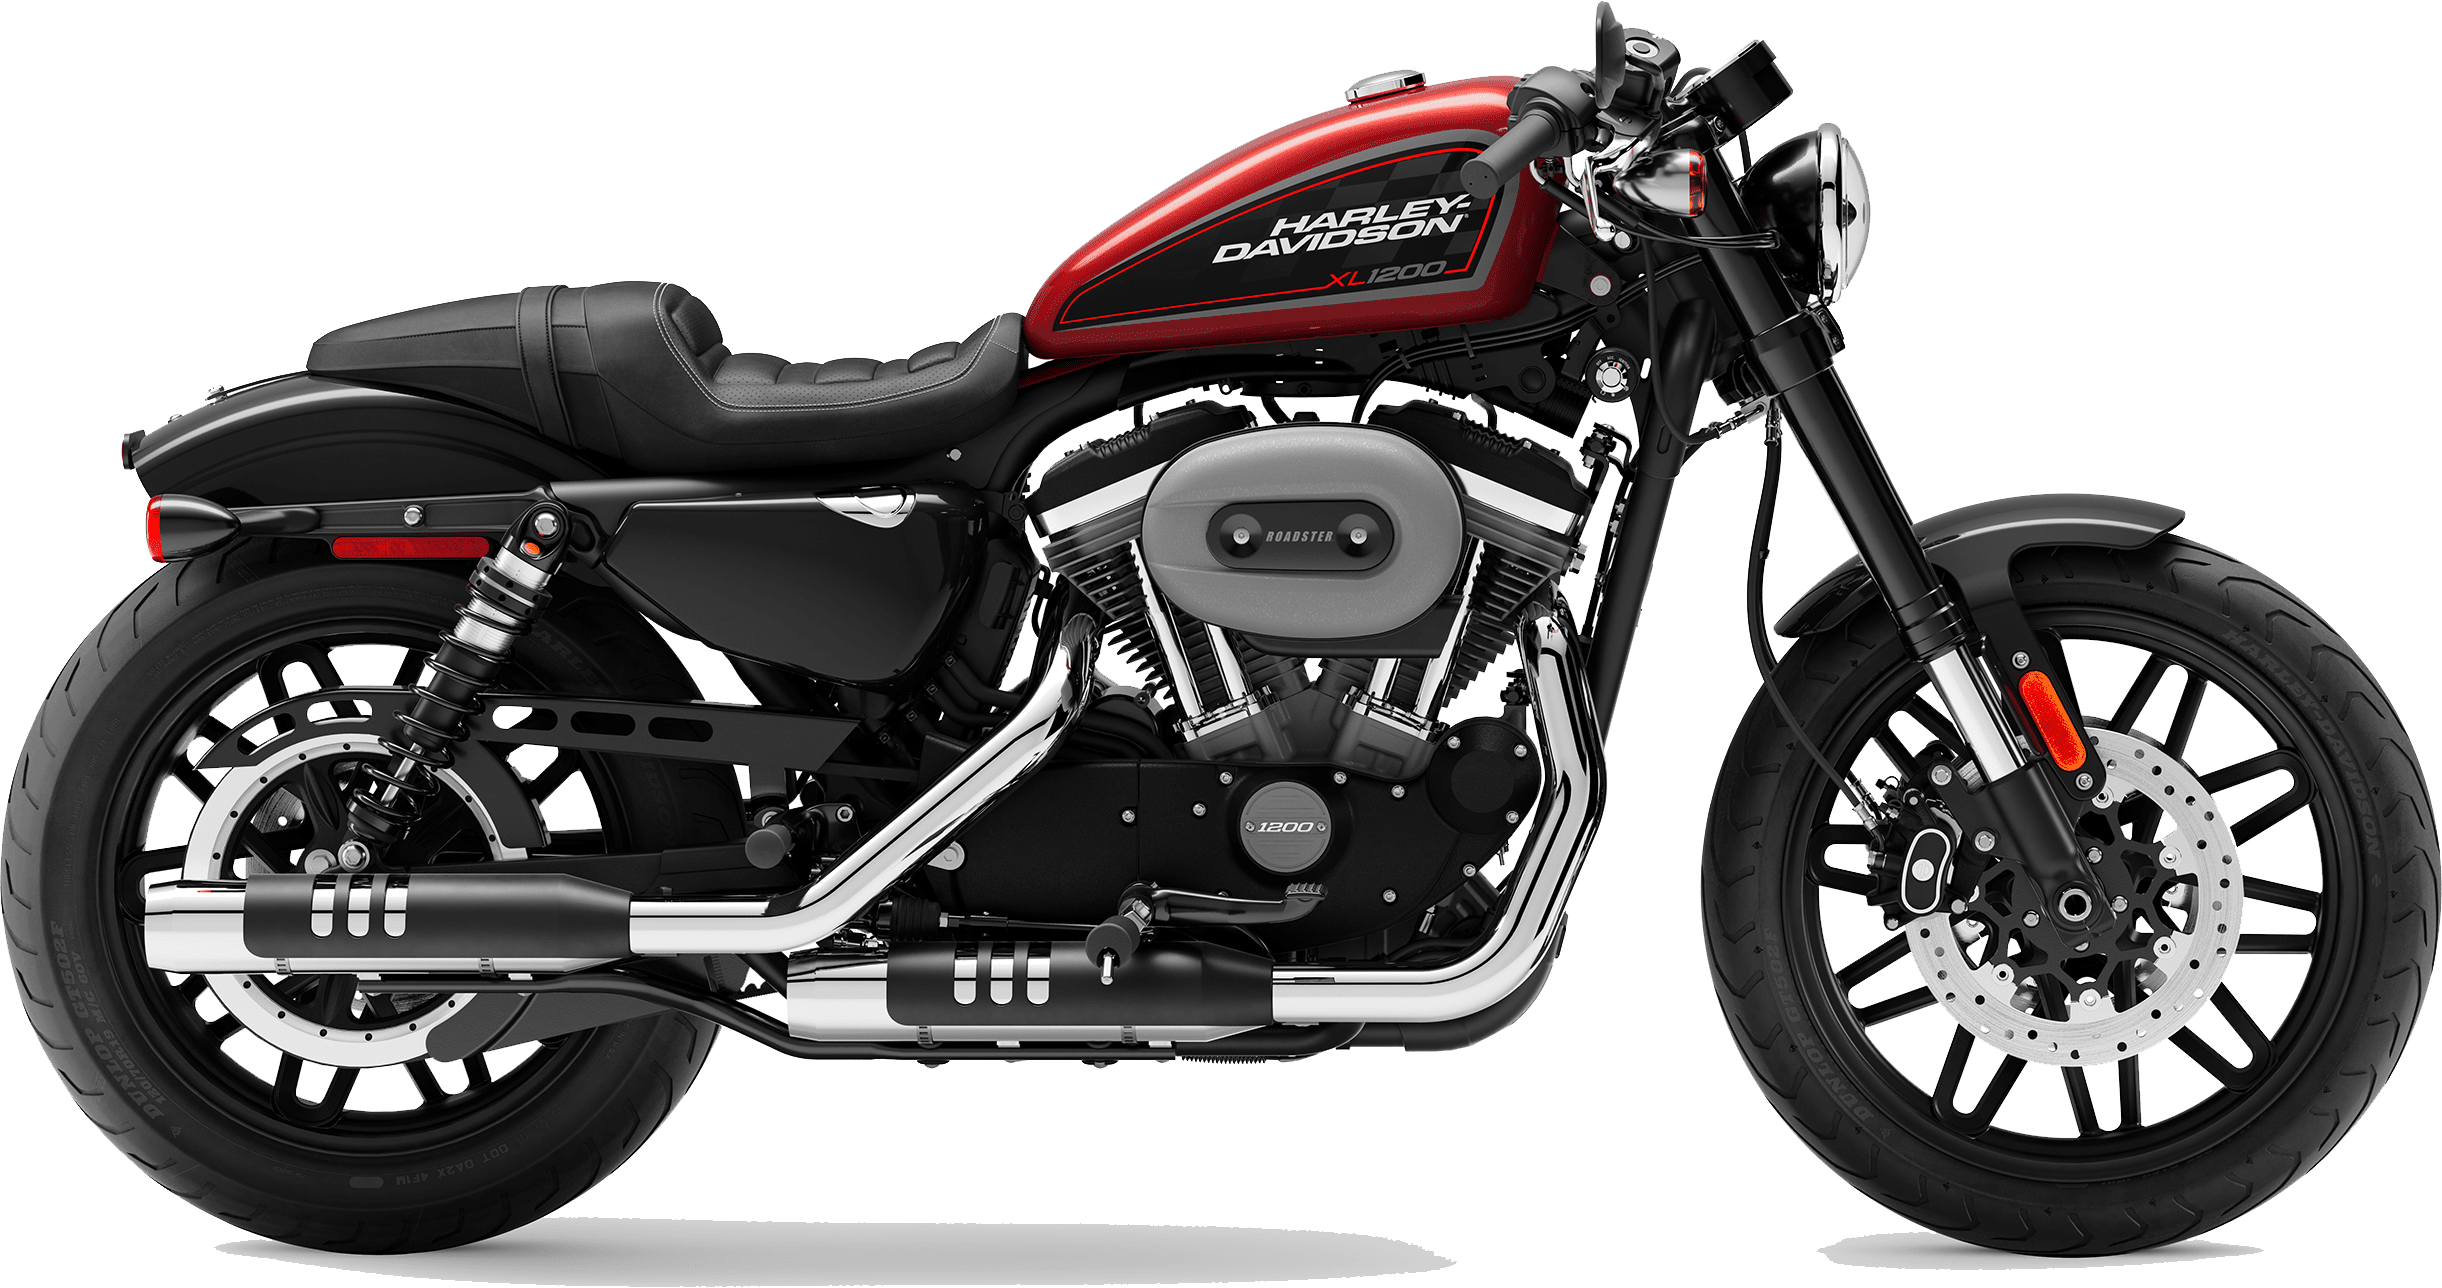 2019 Harley-Davidson H-D Sportster® Roadster Wicked Red